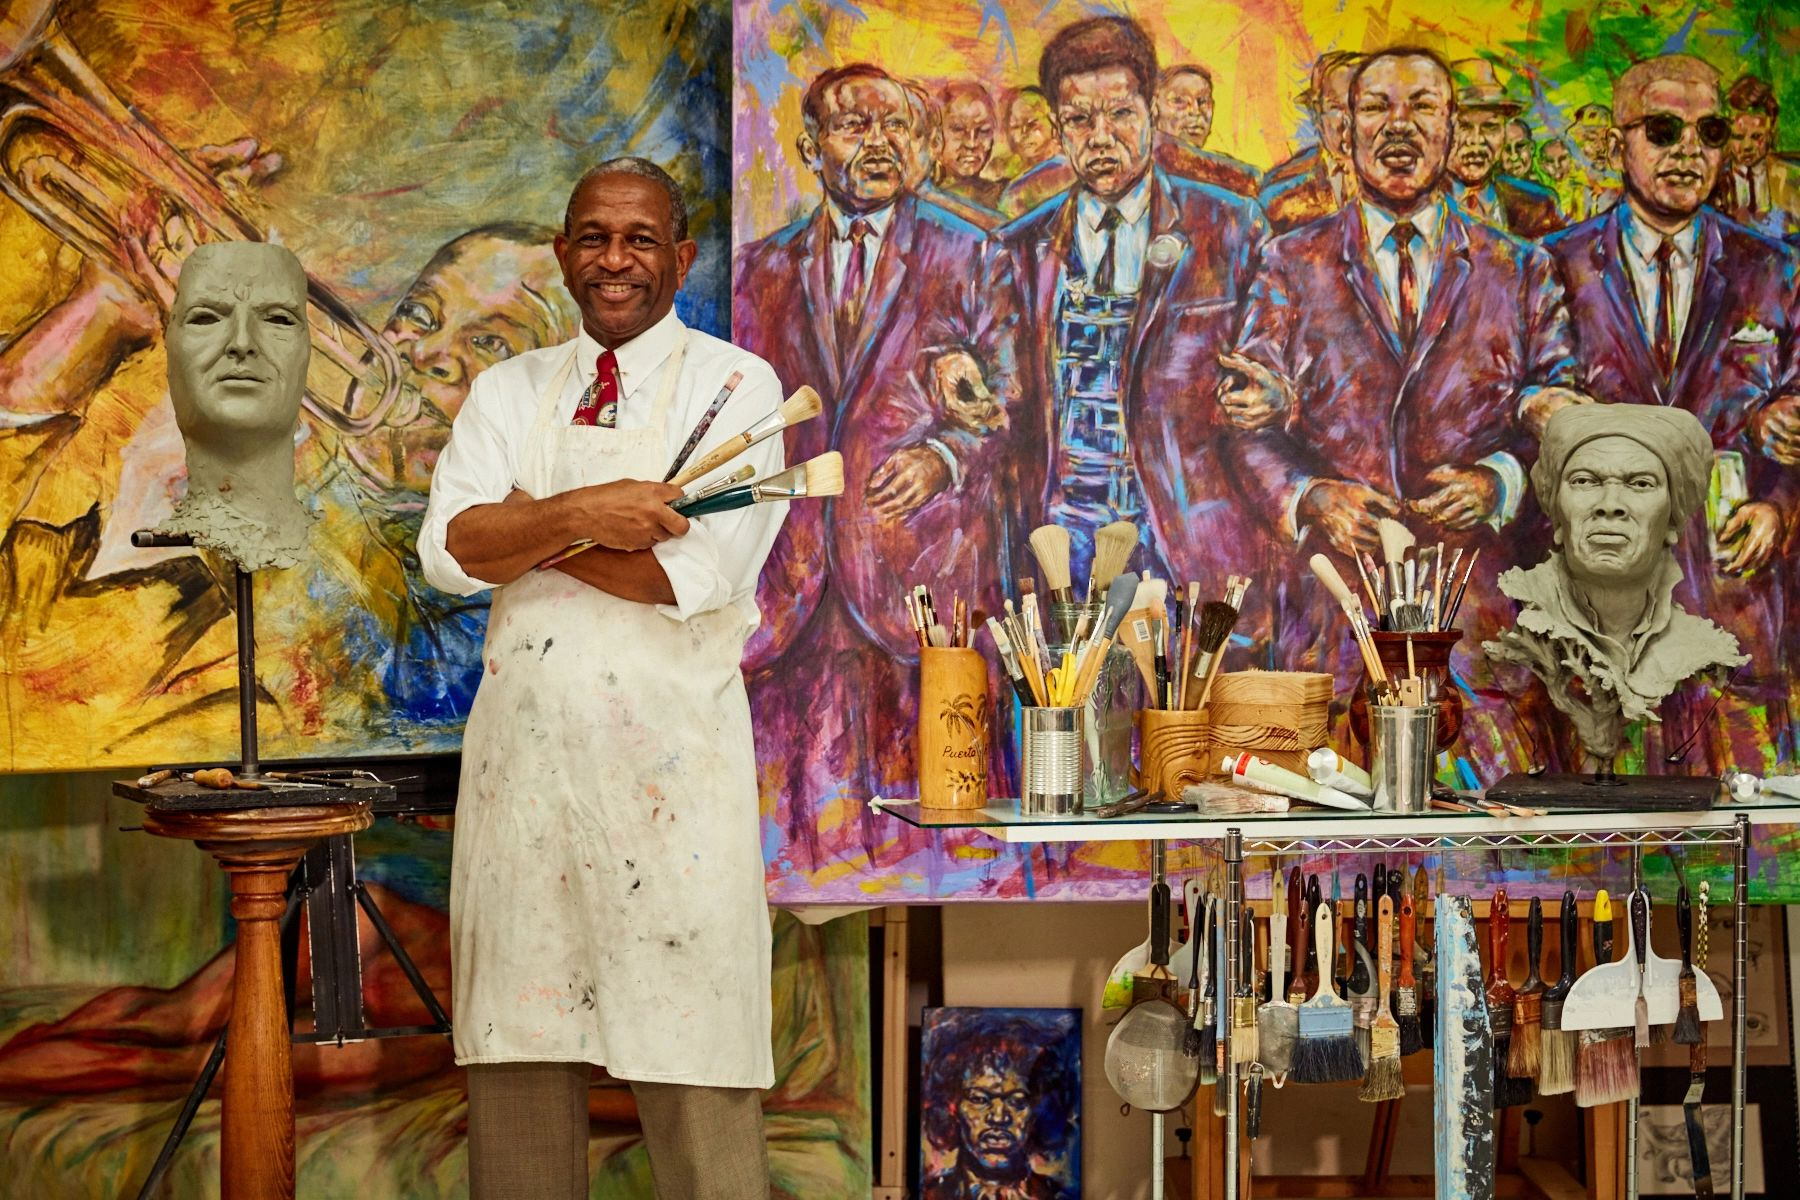 Kevin Pullen in the artist's studio